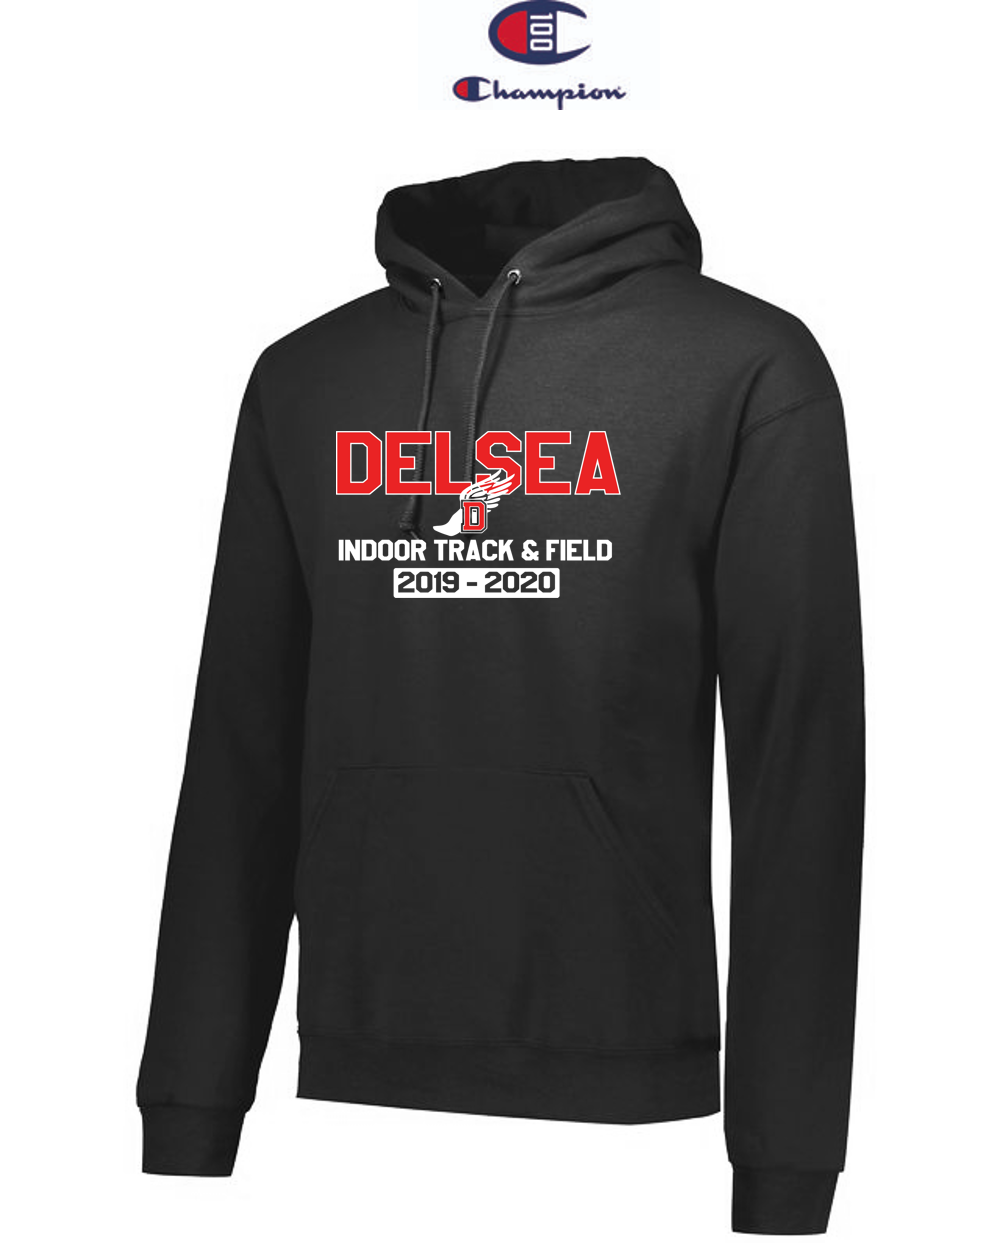 Champion Adult Double Dry Eco® Pullover Hood - Delsea Indoor Track